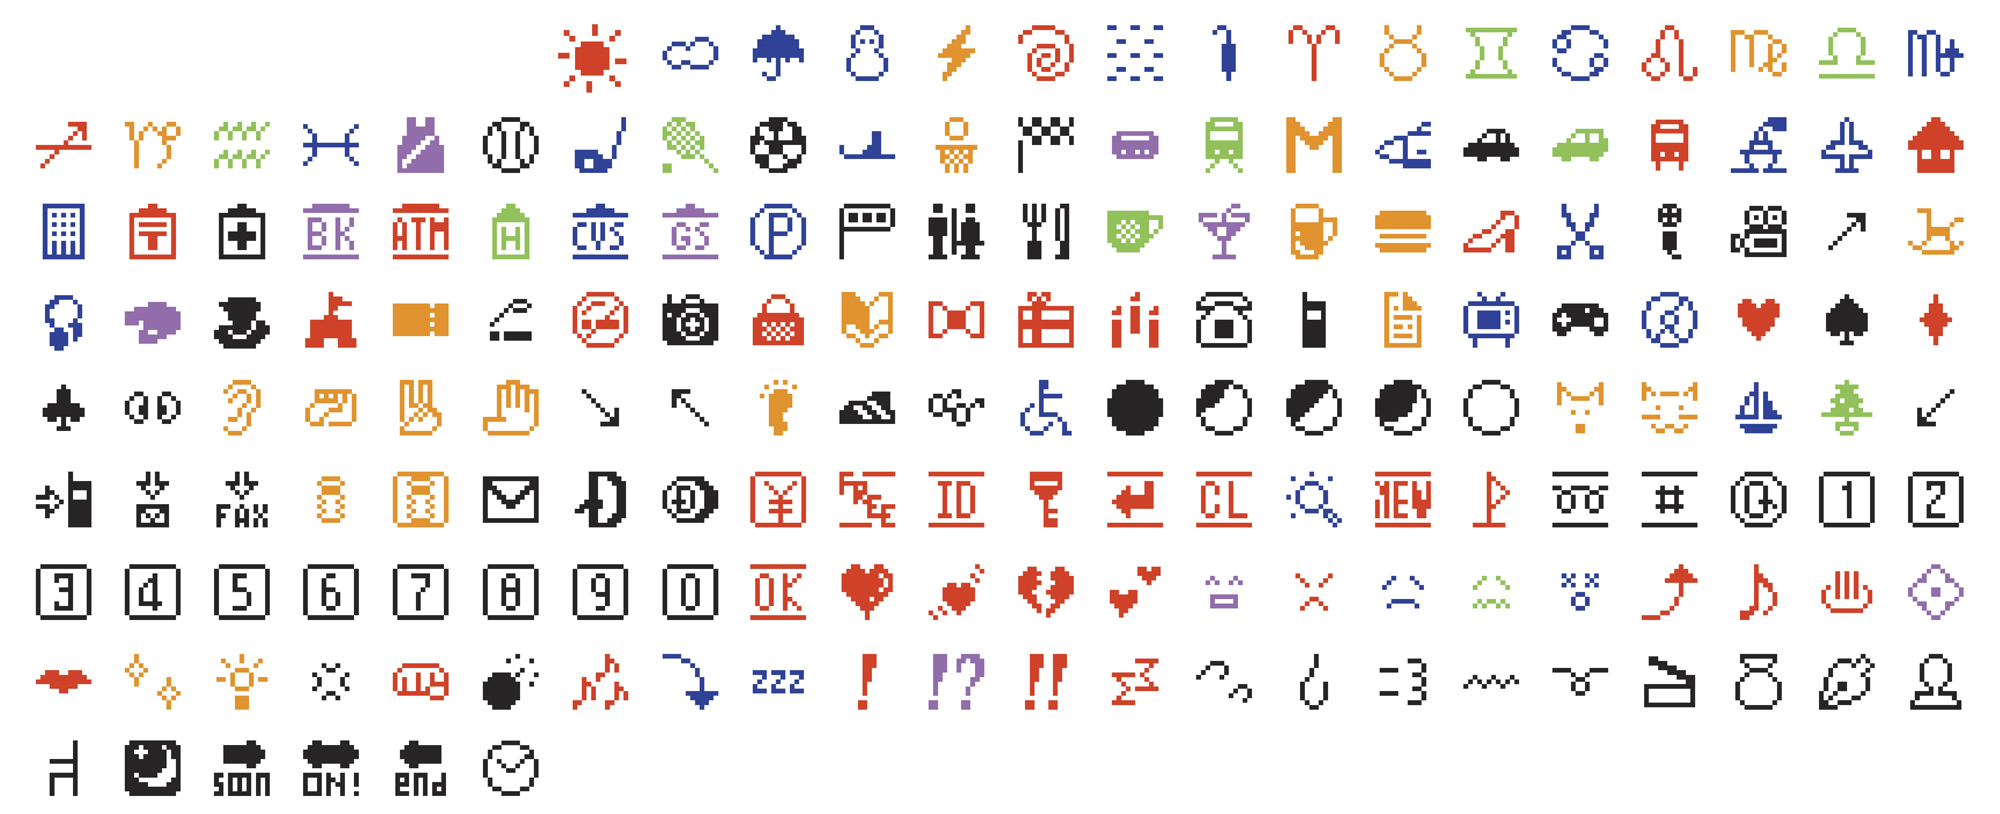 This photo shows the original set of 176 emojis, which the Museum of Modern Art has acquired. The emojis were a gift to the museum from the phone company, Nippon Telegraph and Telephone.